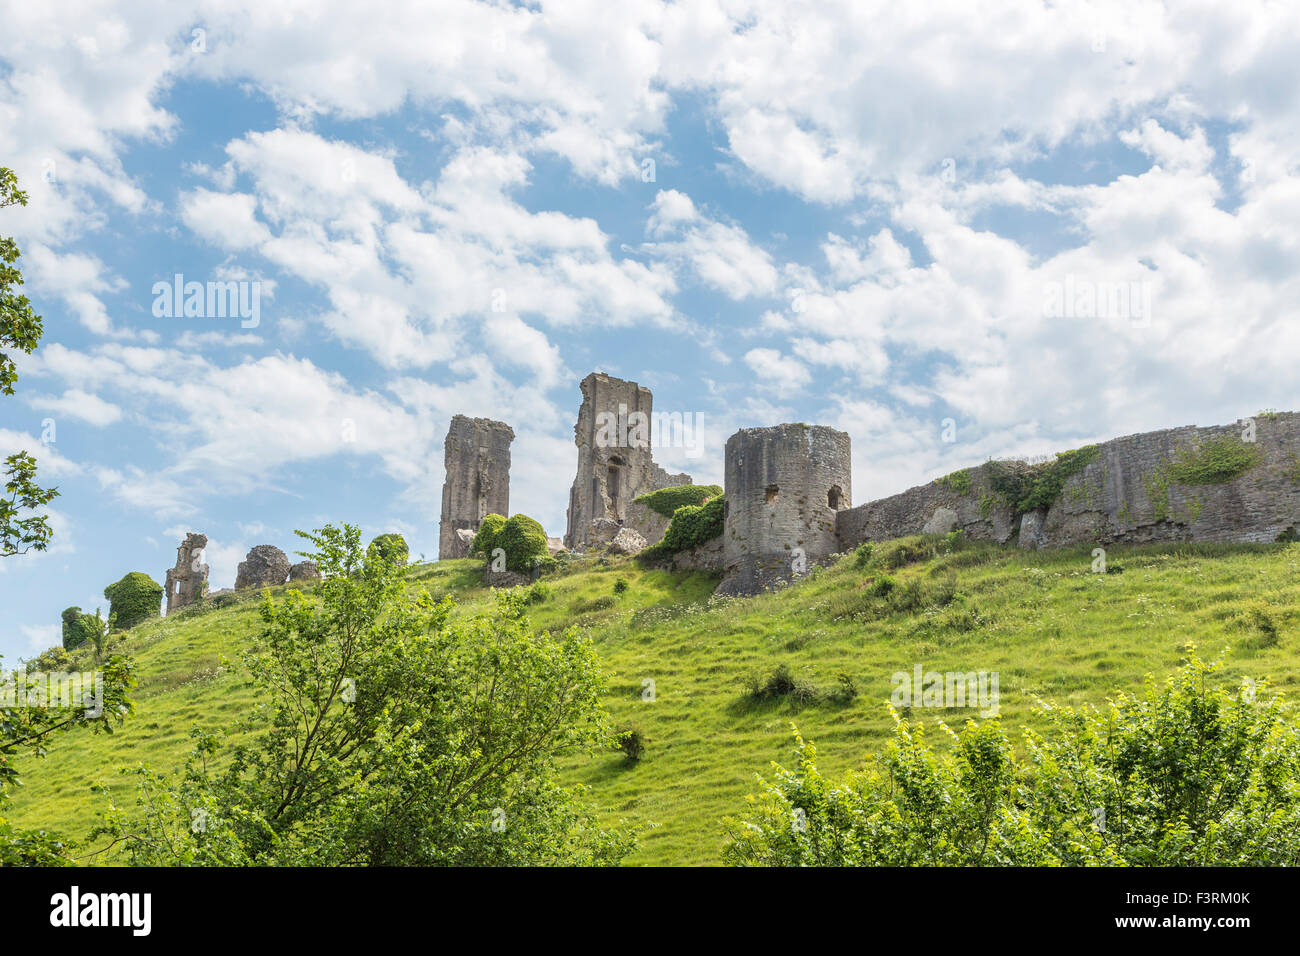 The hilltop ruins of Corfe Castle in Corfe, Dorset, south-west England on a sunny day with white fluffy clouds and - Stock Image